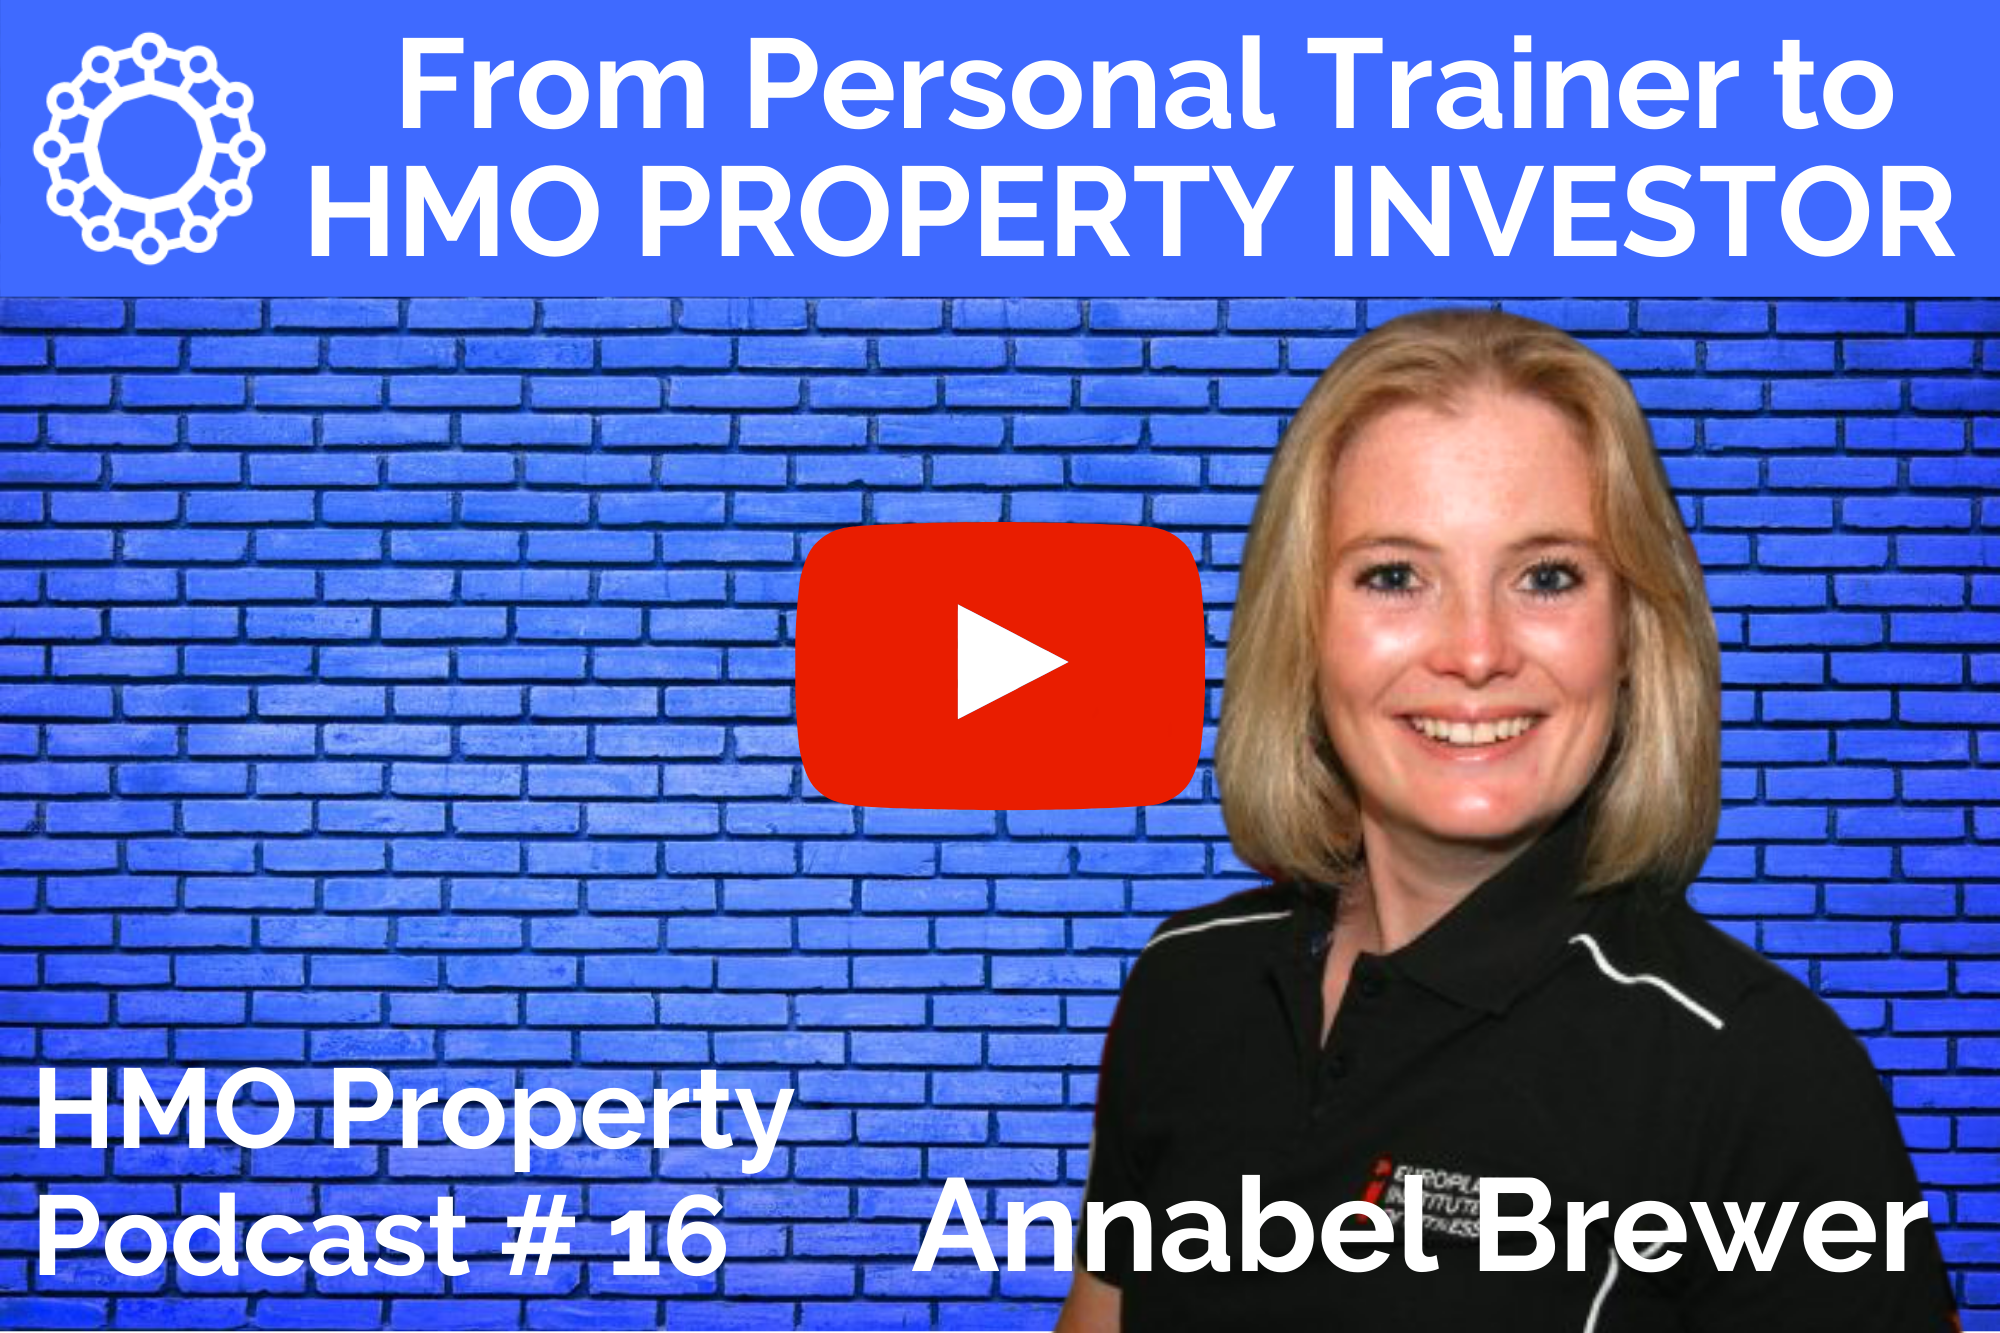 The HMO Property Podcast with Annabel Brewer